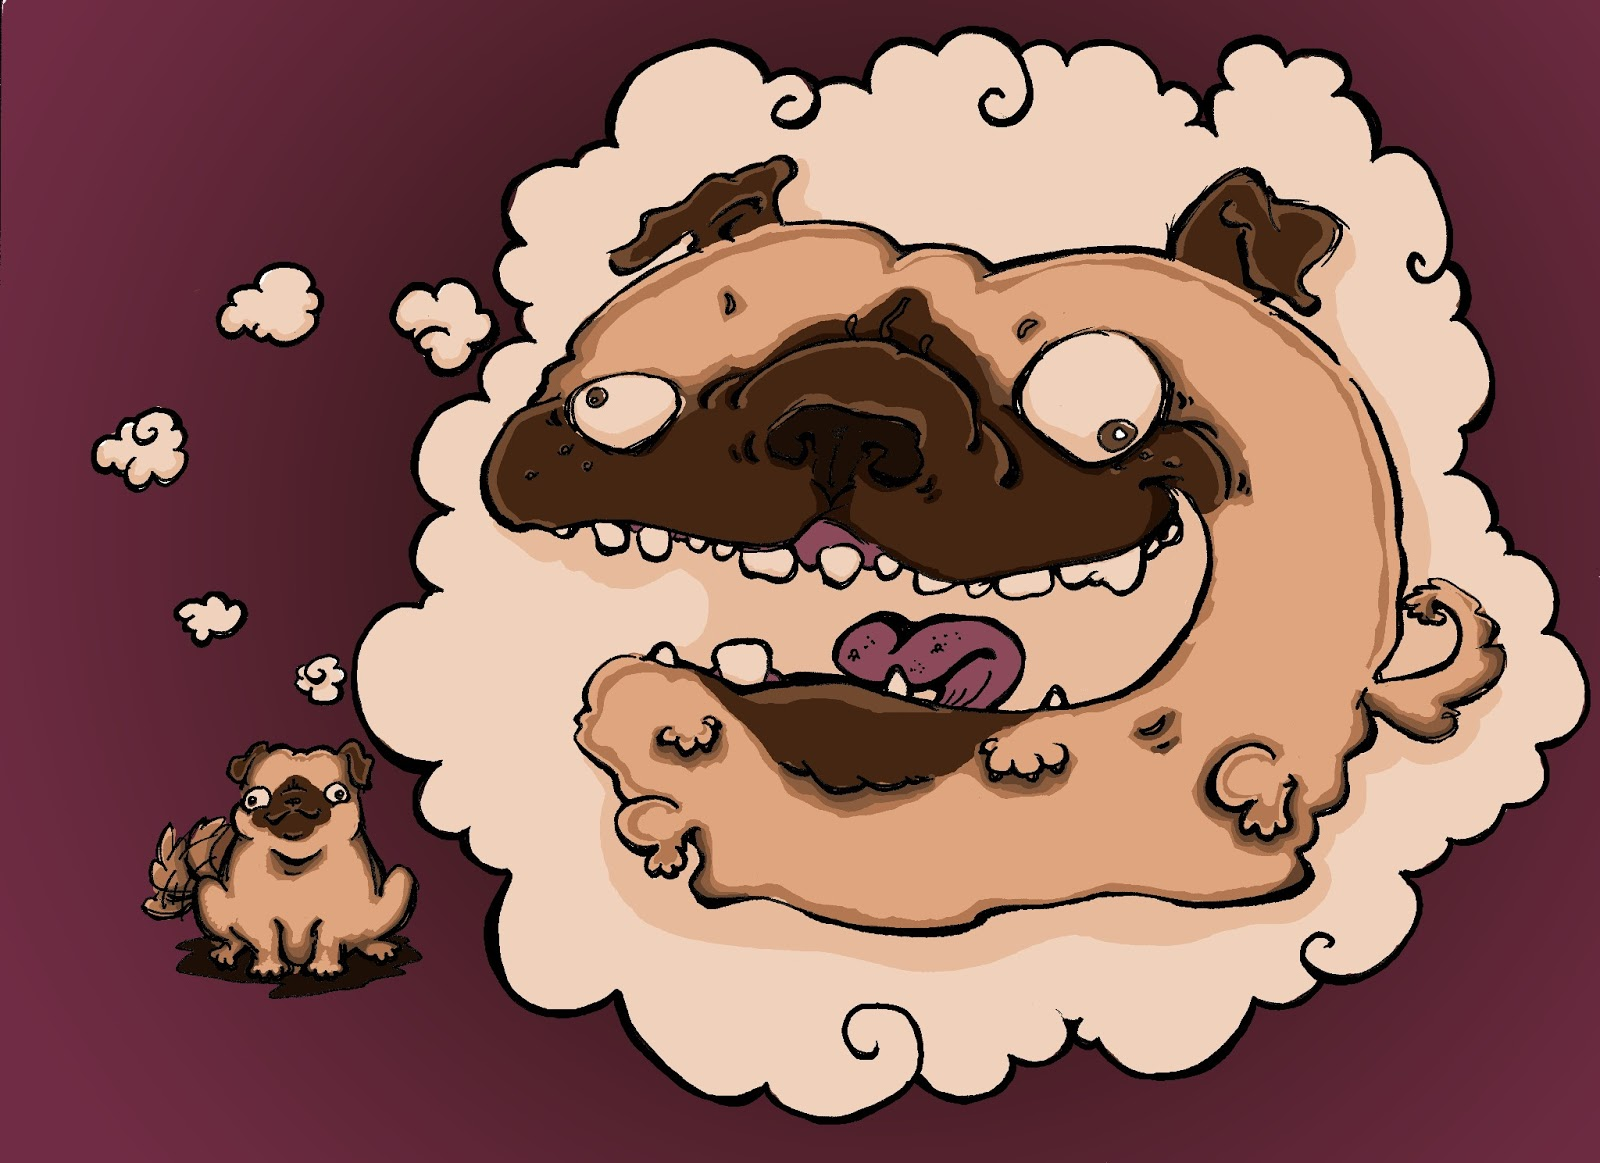 Drawn pug derpy The derpy with brown Tsunami